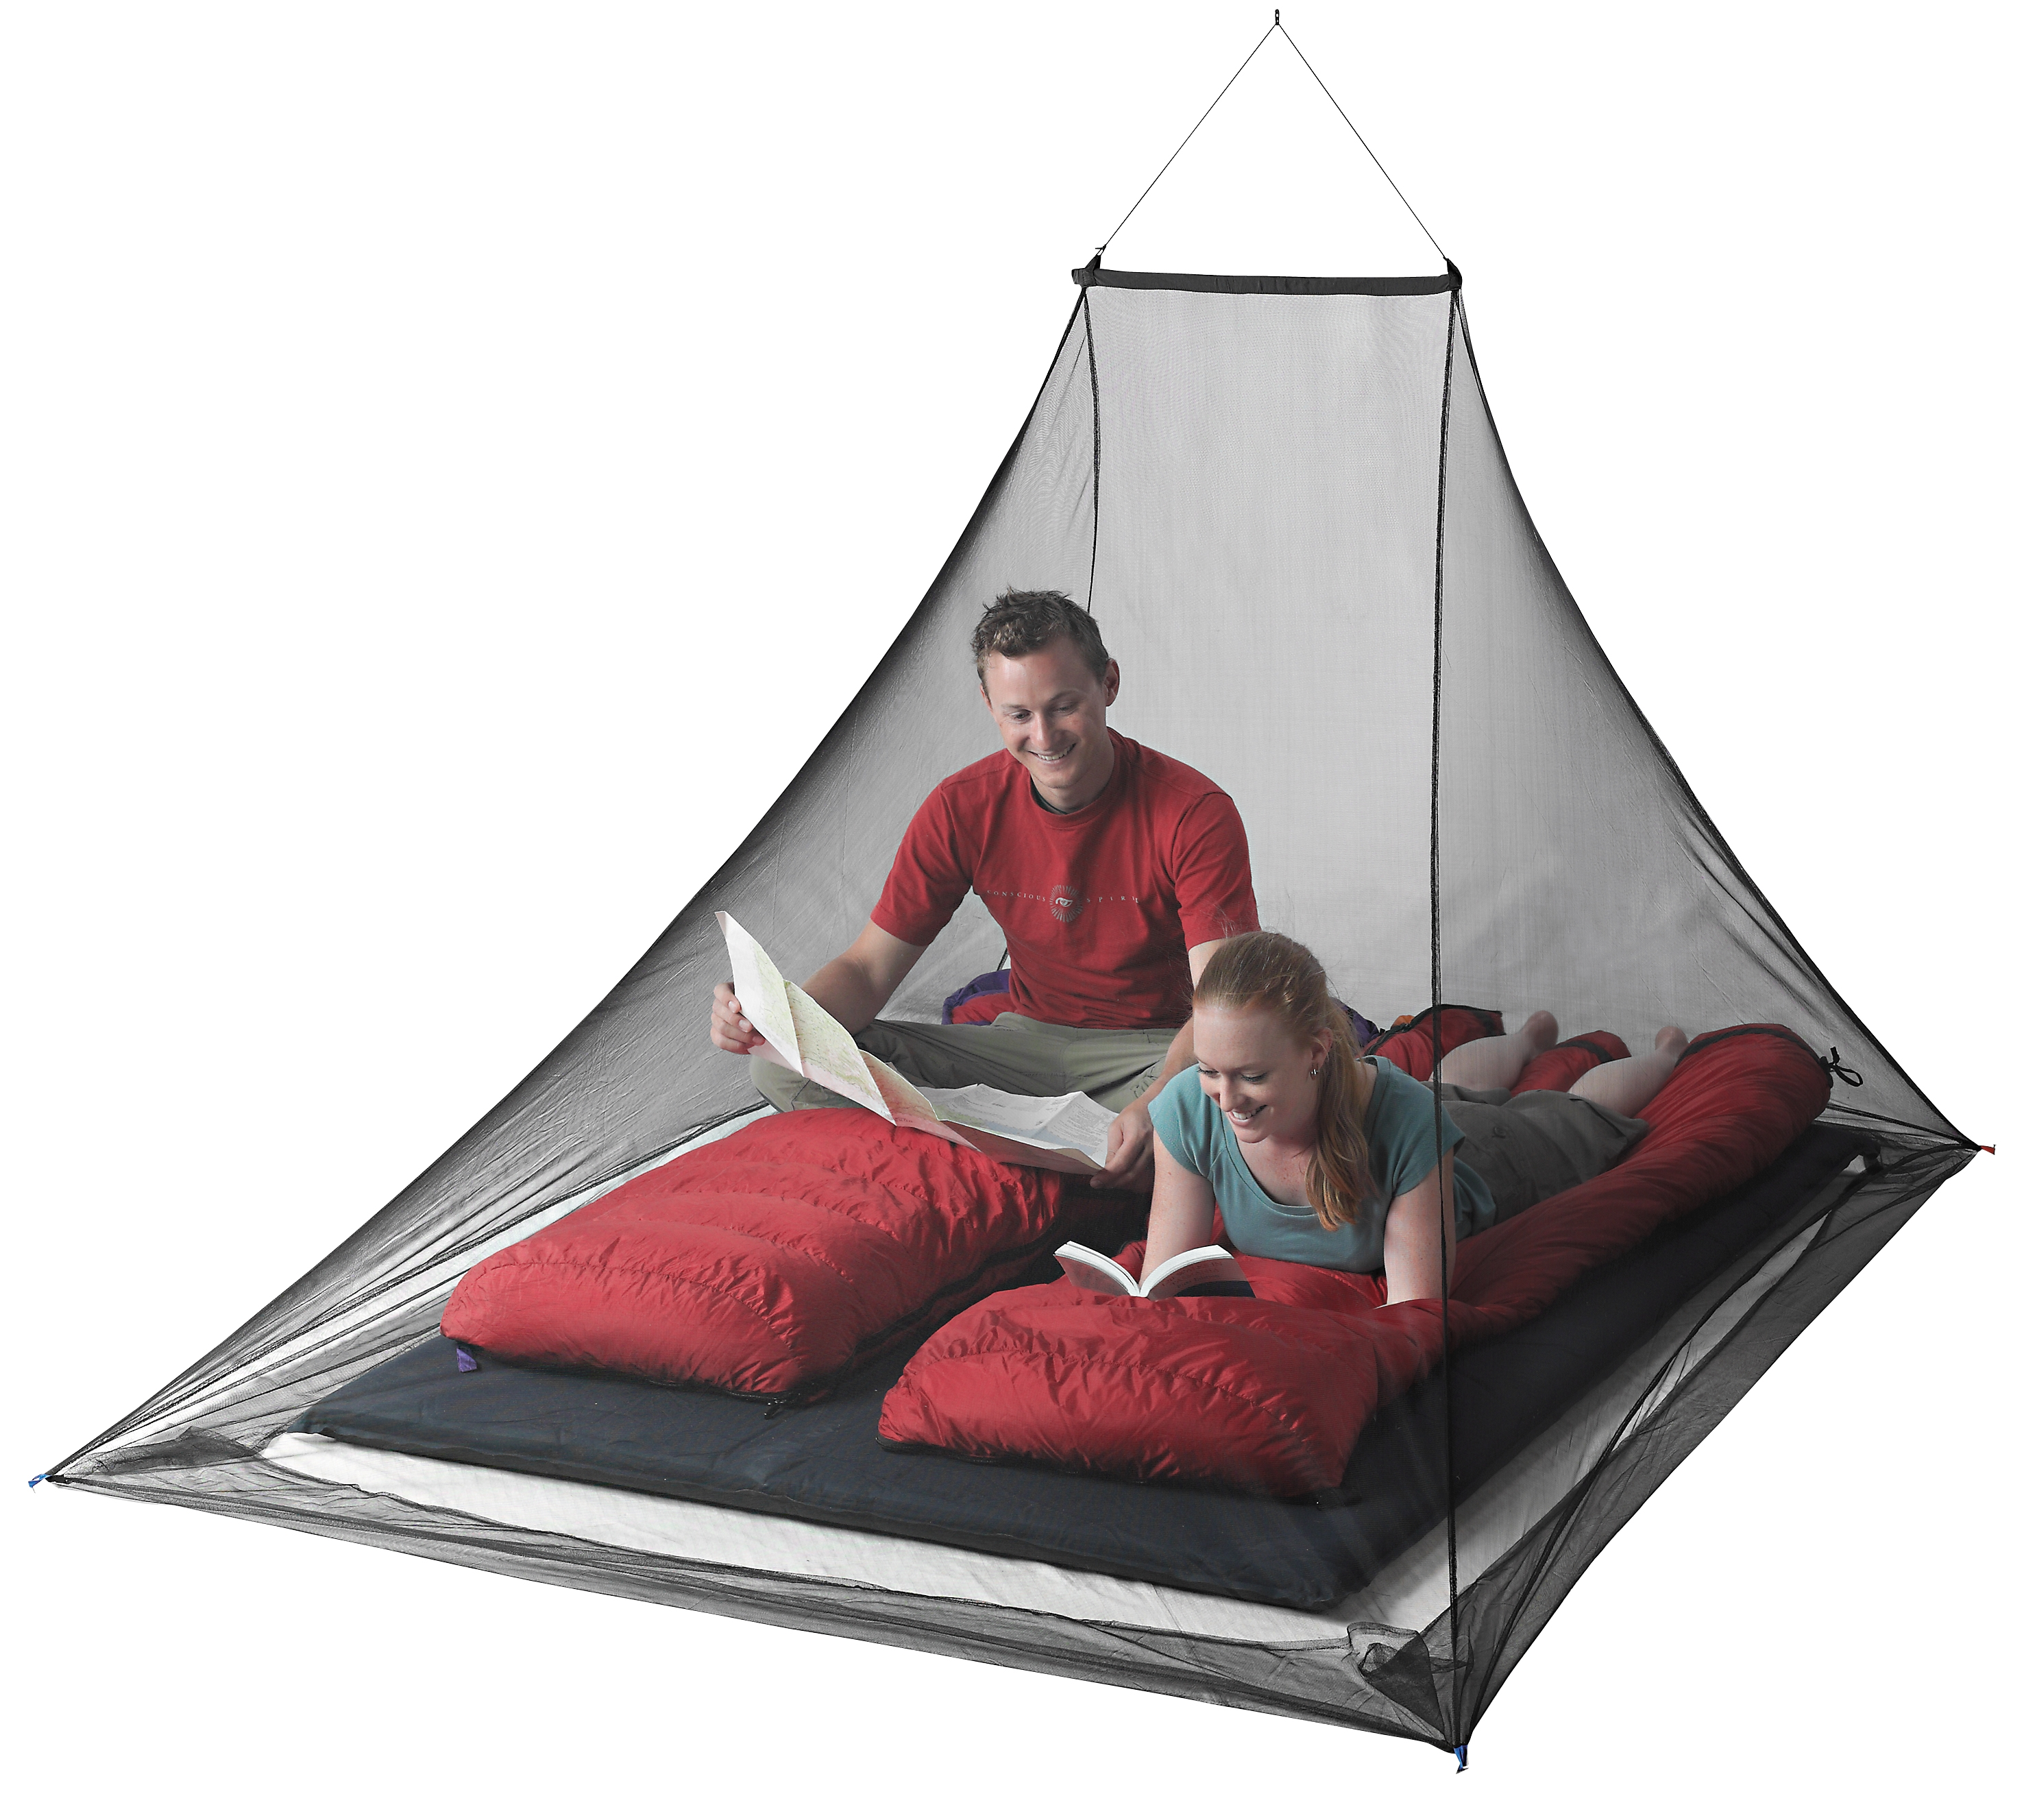 Sea to Summit Mosquito Net with Insect Shield